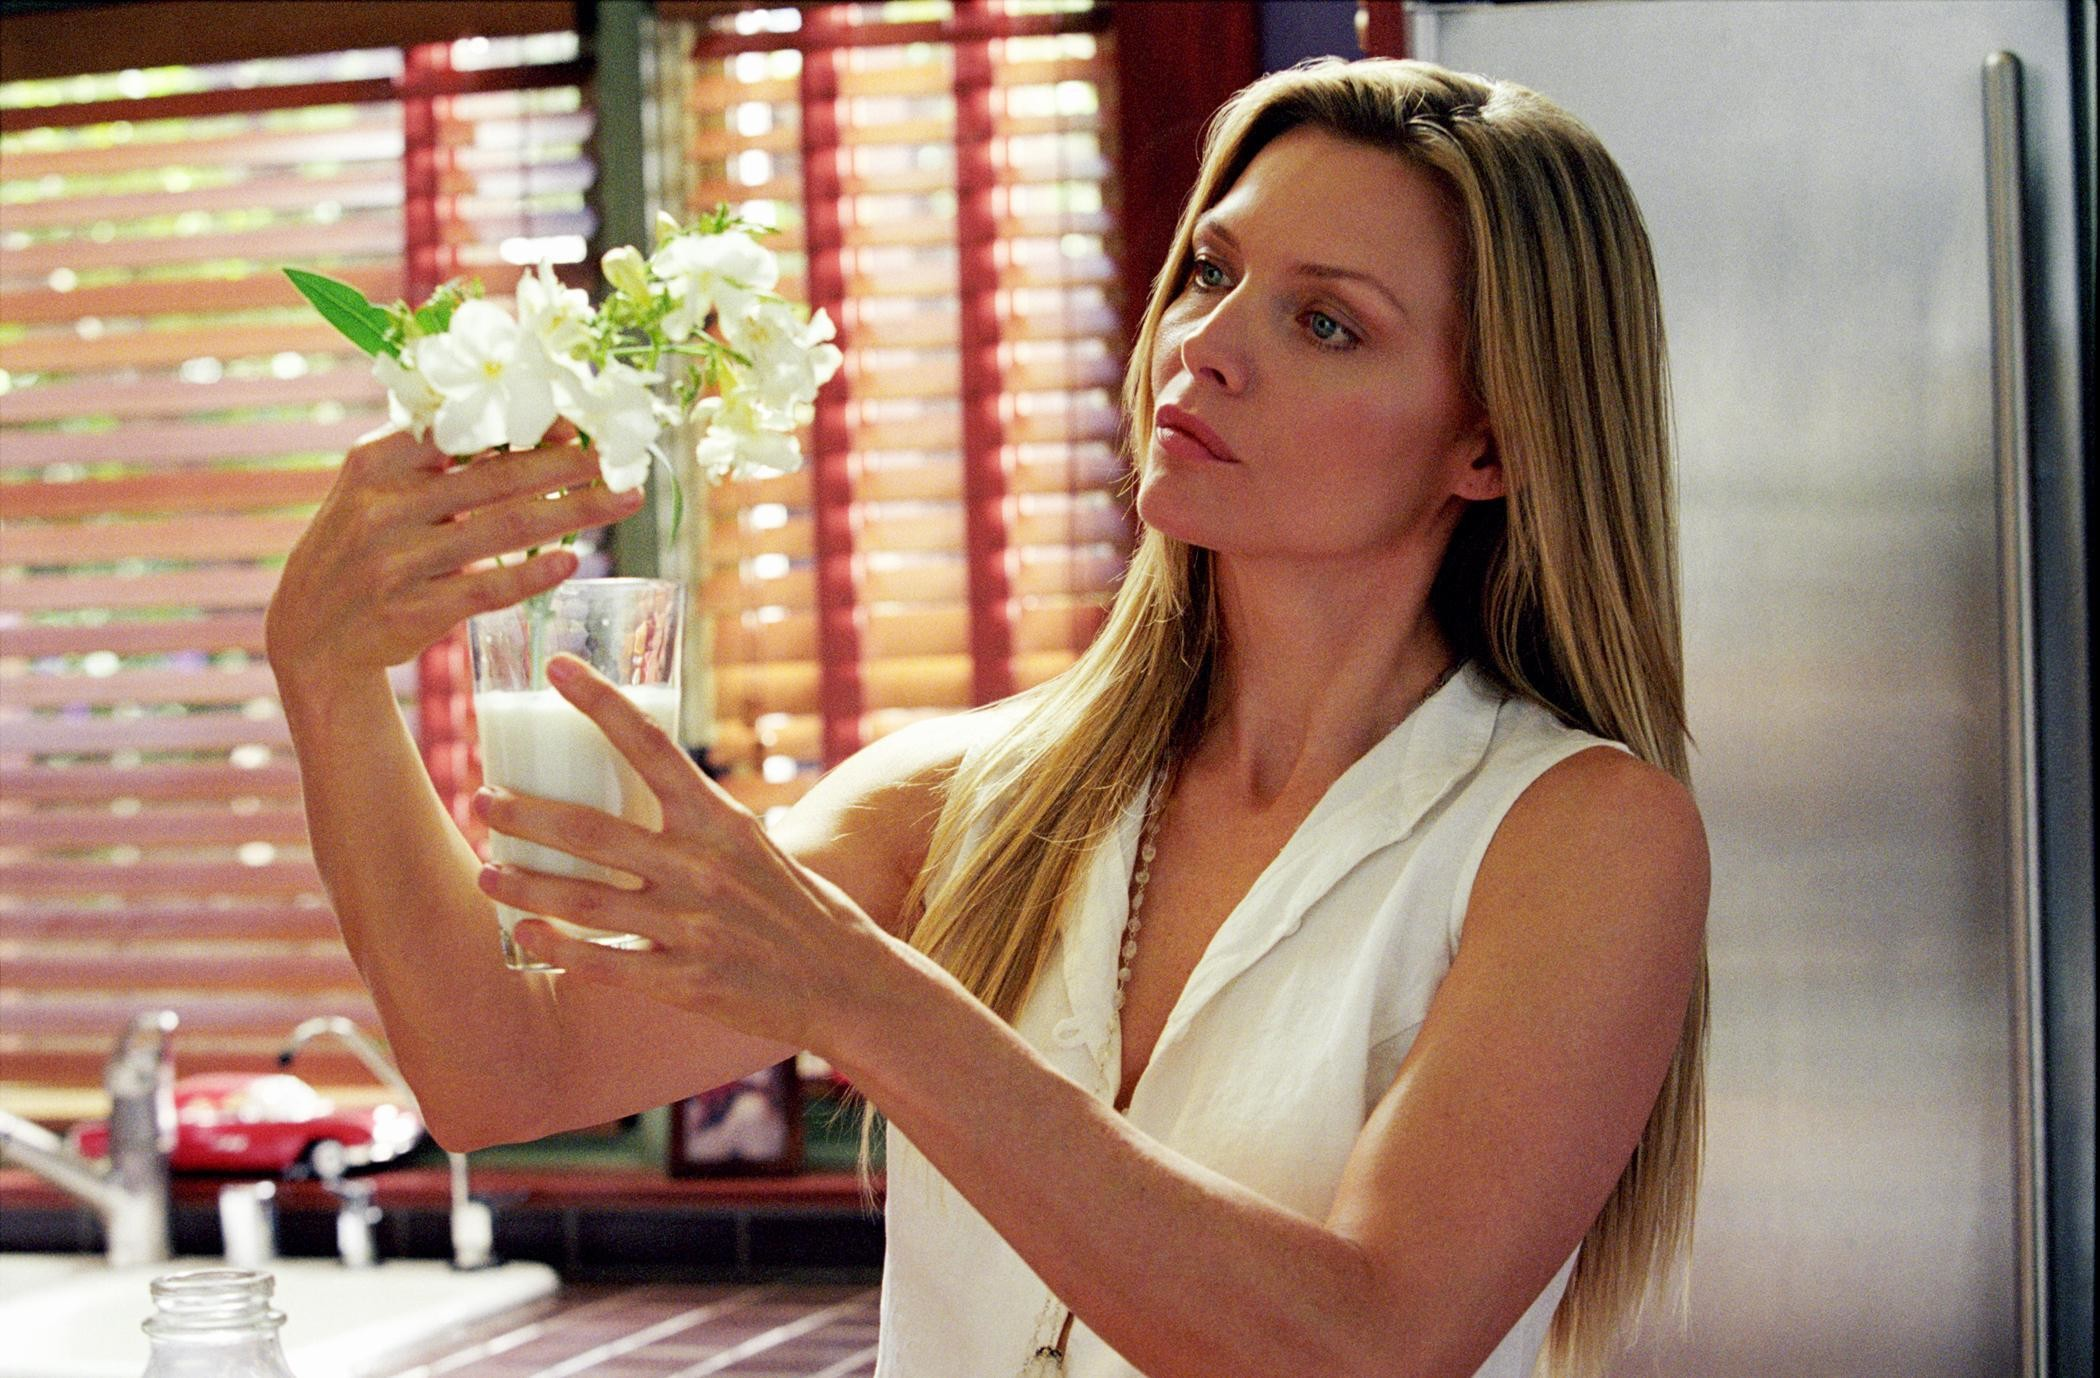 Res: 2100x1378, White Oleander images Ingrid Magnussen HD wallpaper and background photos